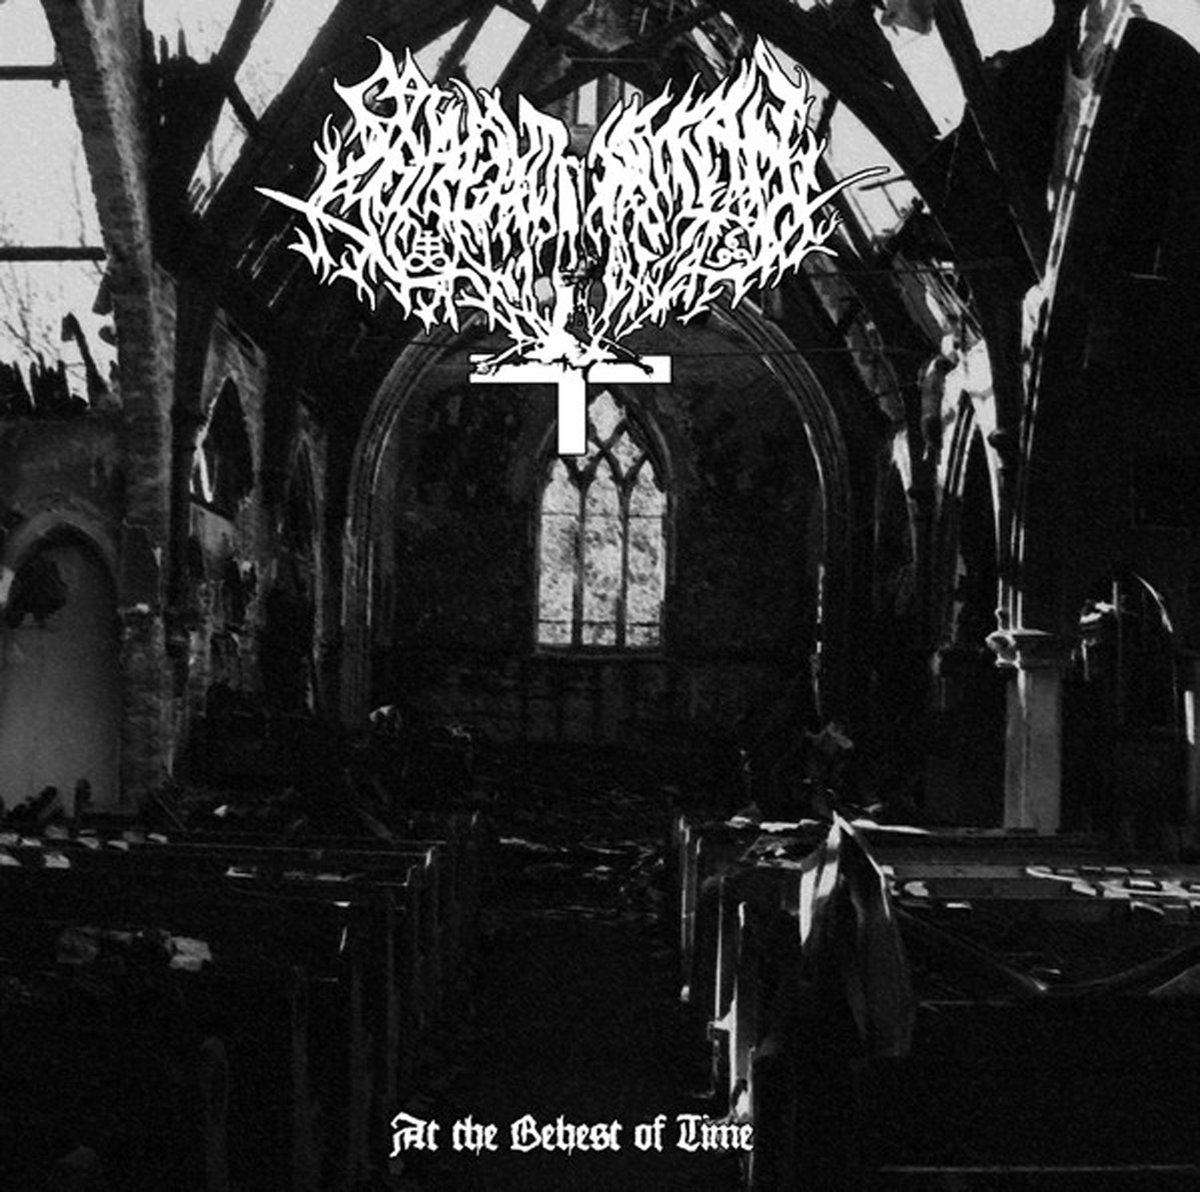 SHROUD OF SATAN - Beyond the Mirror of Worlds